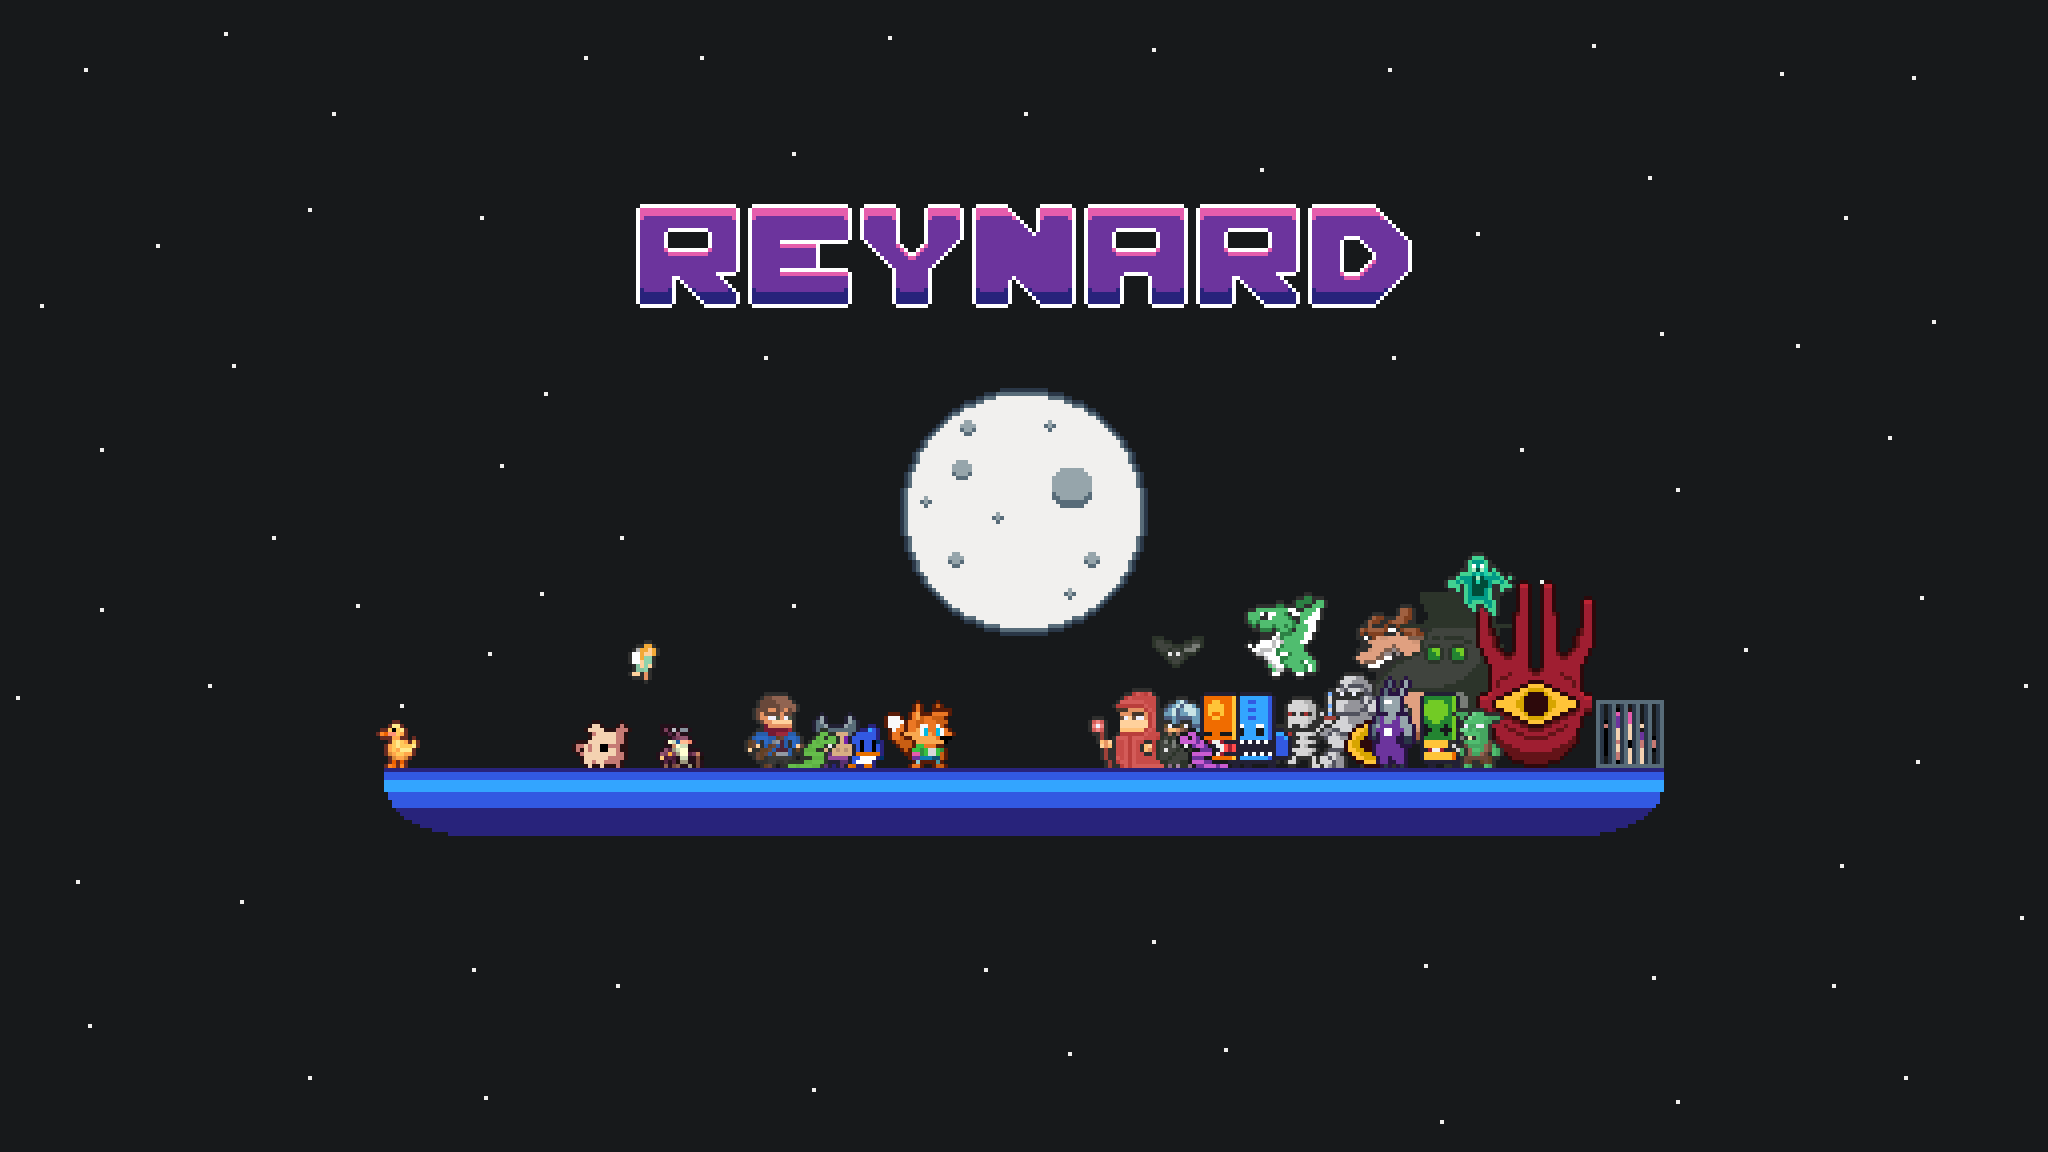 Reynard fox game